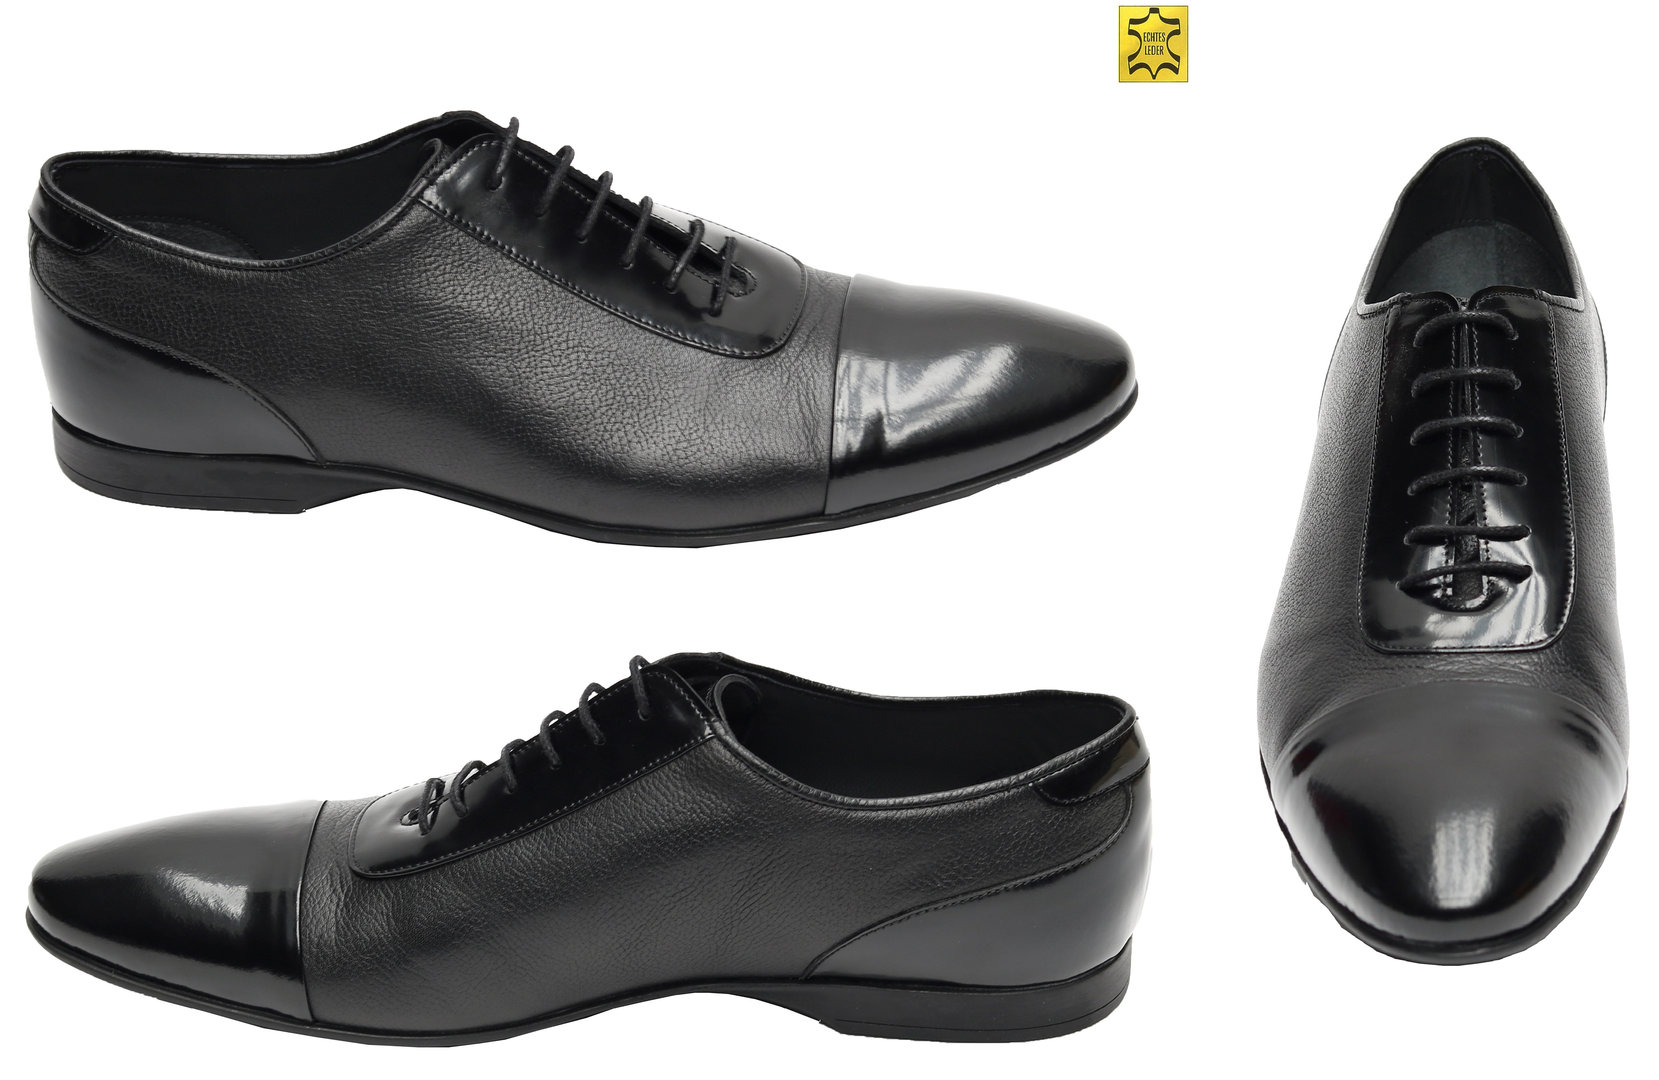 tendance chaussure homme homme chaussures. Black Bedroom Furniture Sets. Home Design Ideas